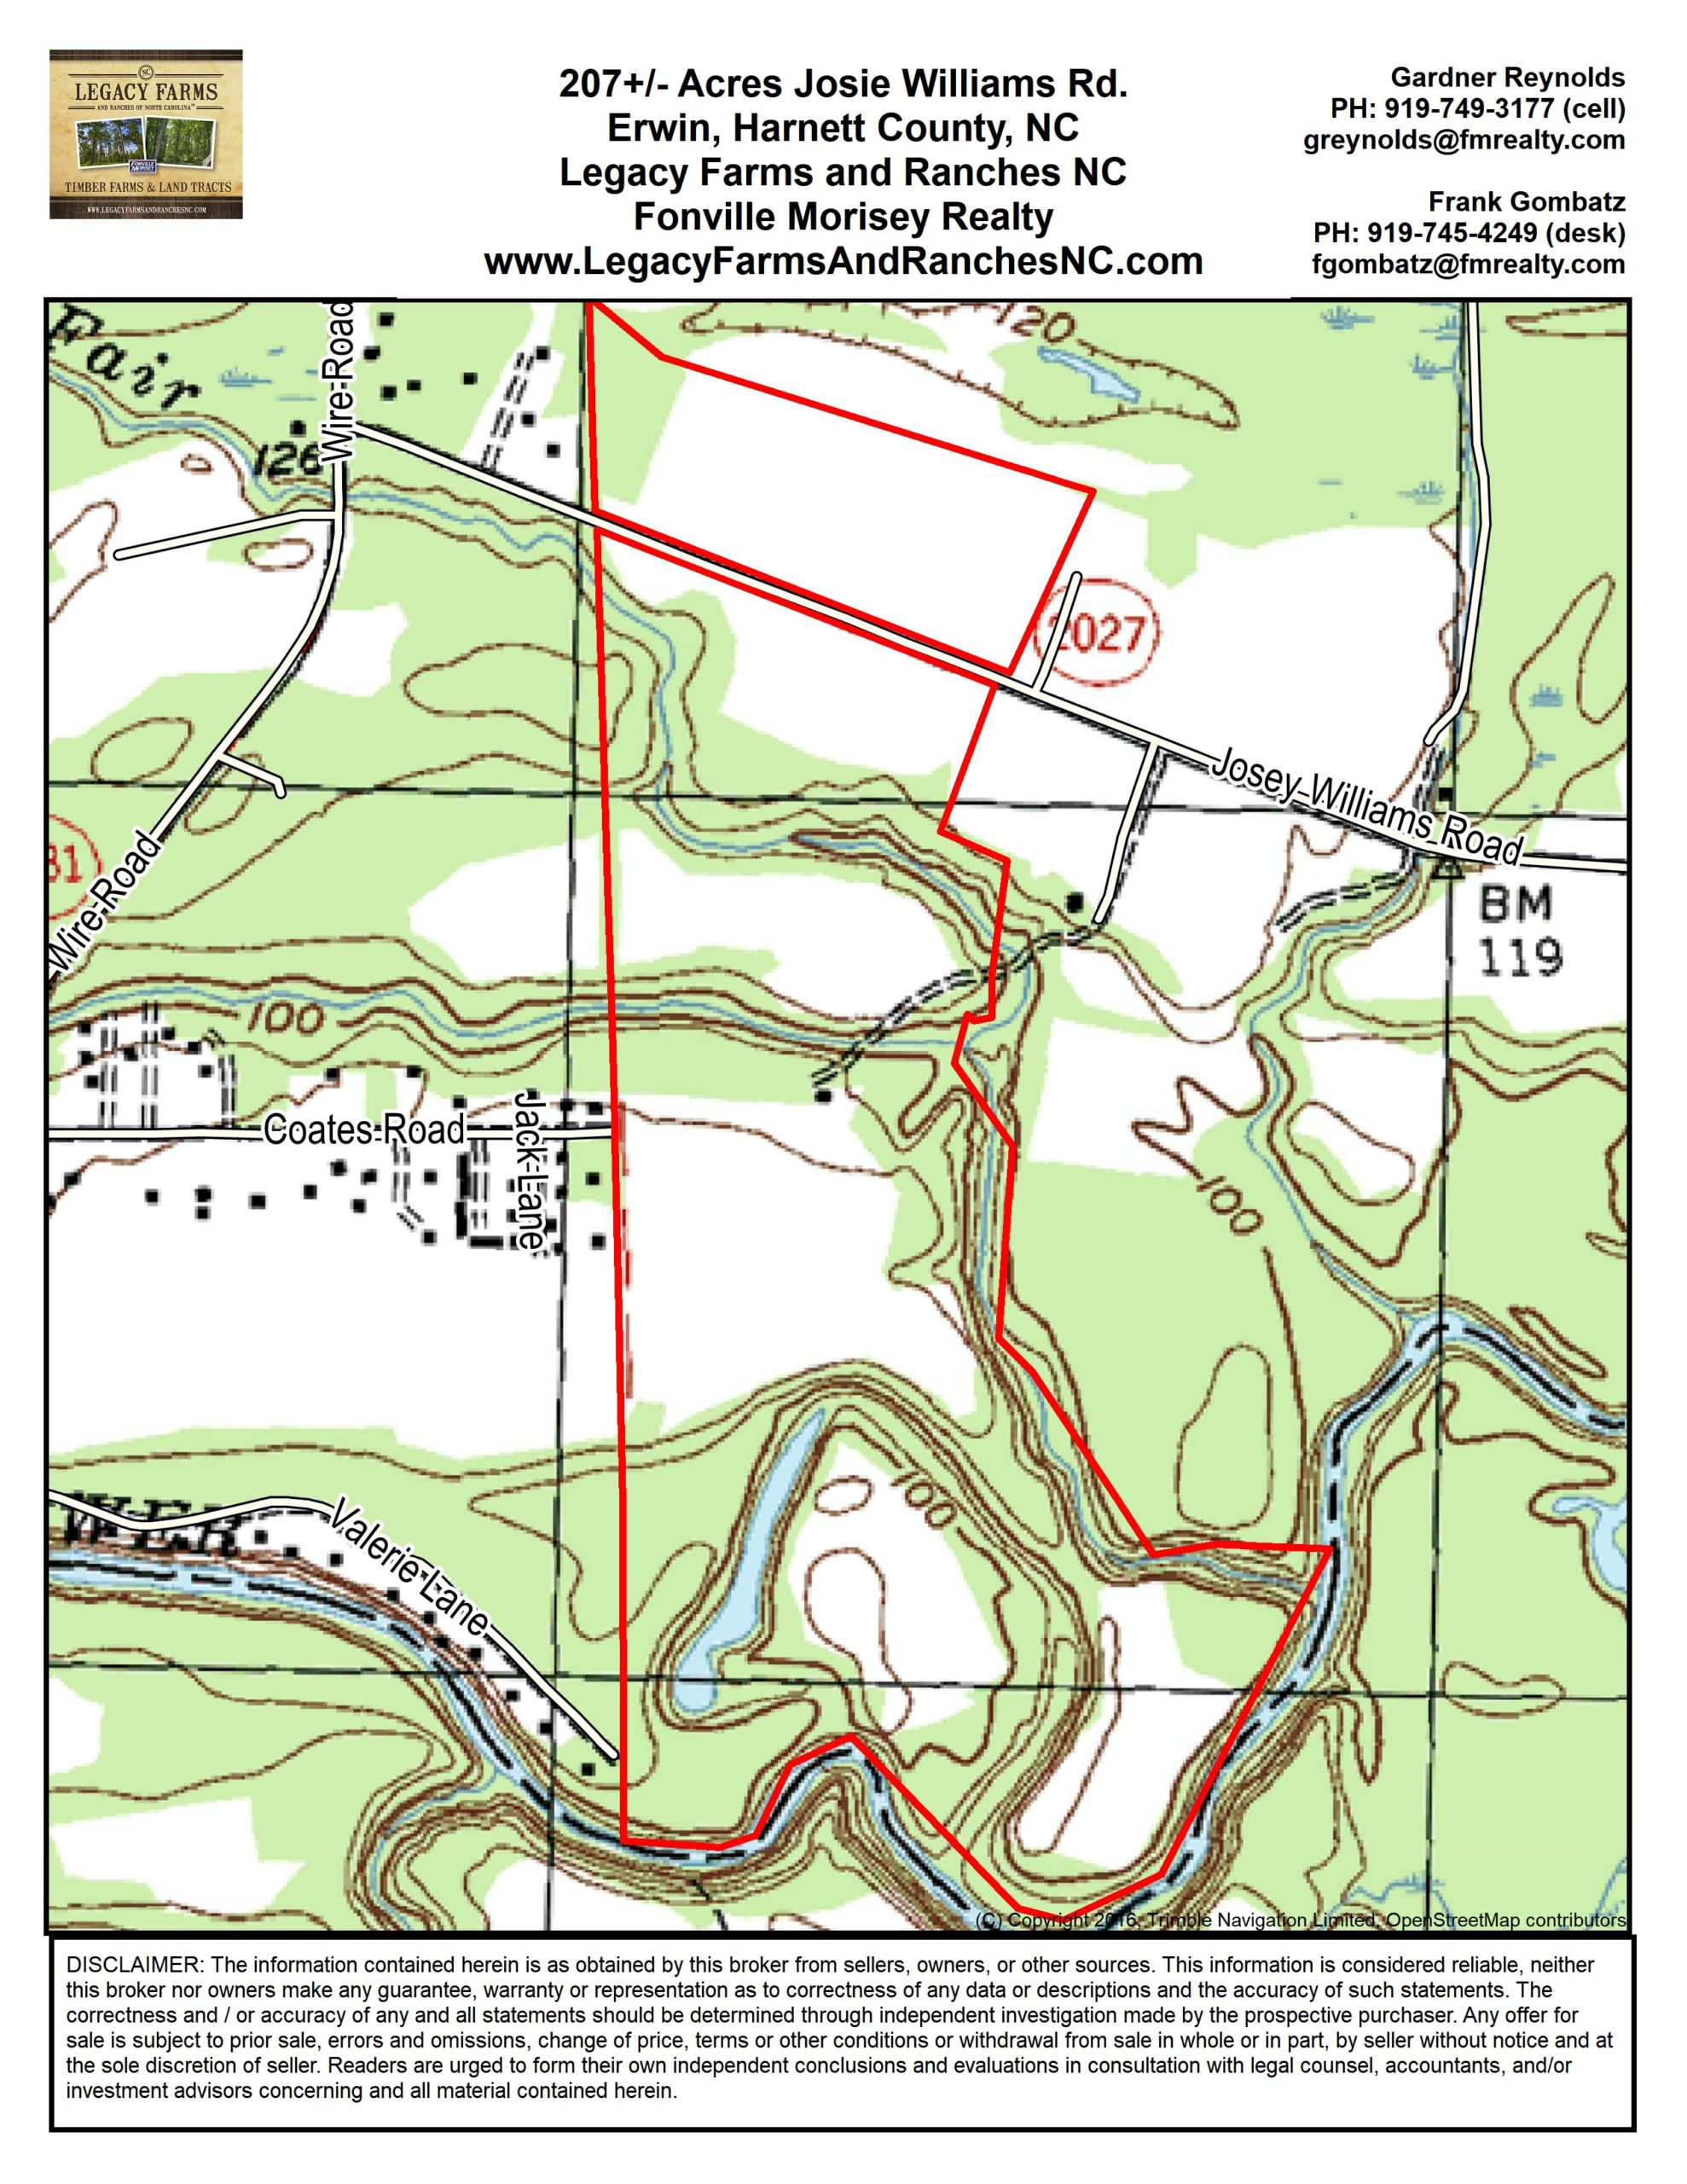 Land for sale in Harnett County, NC Topo